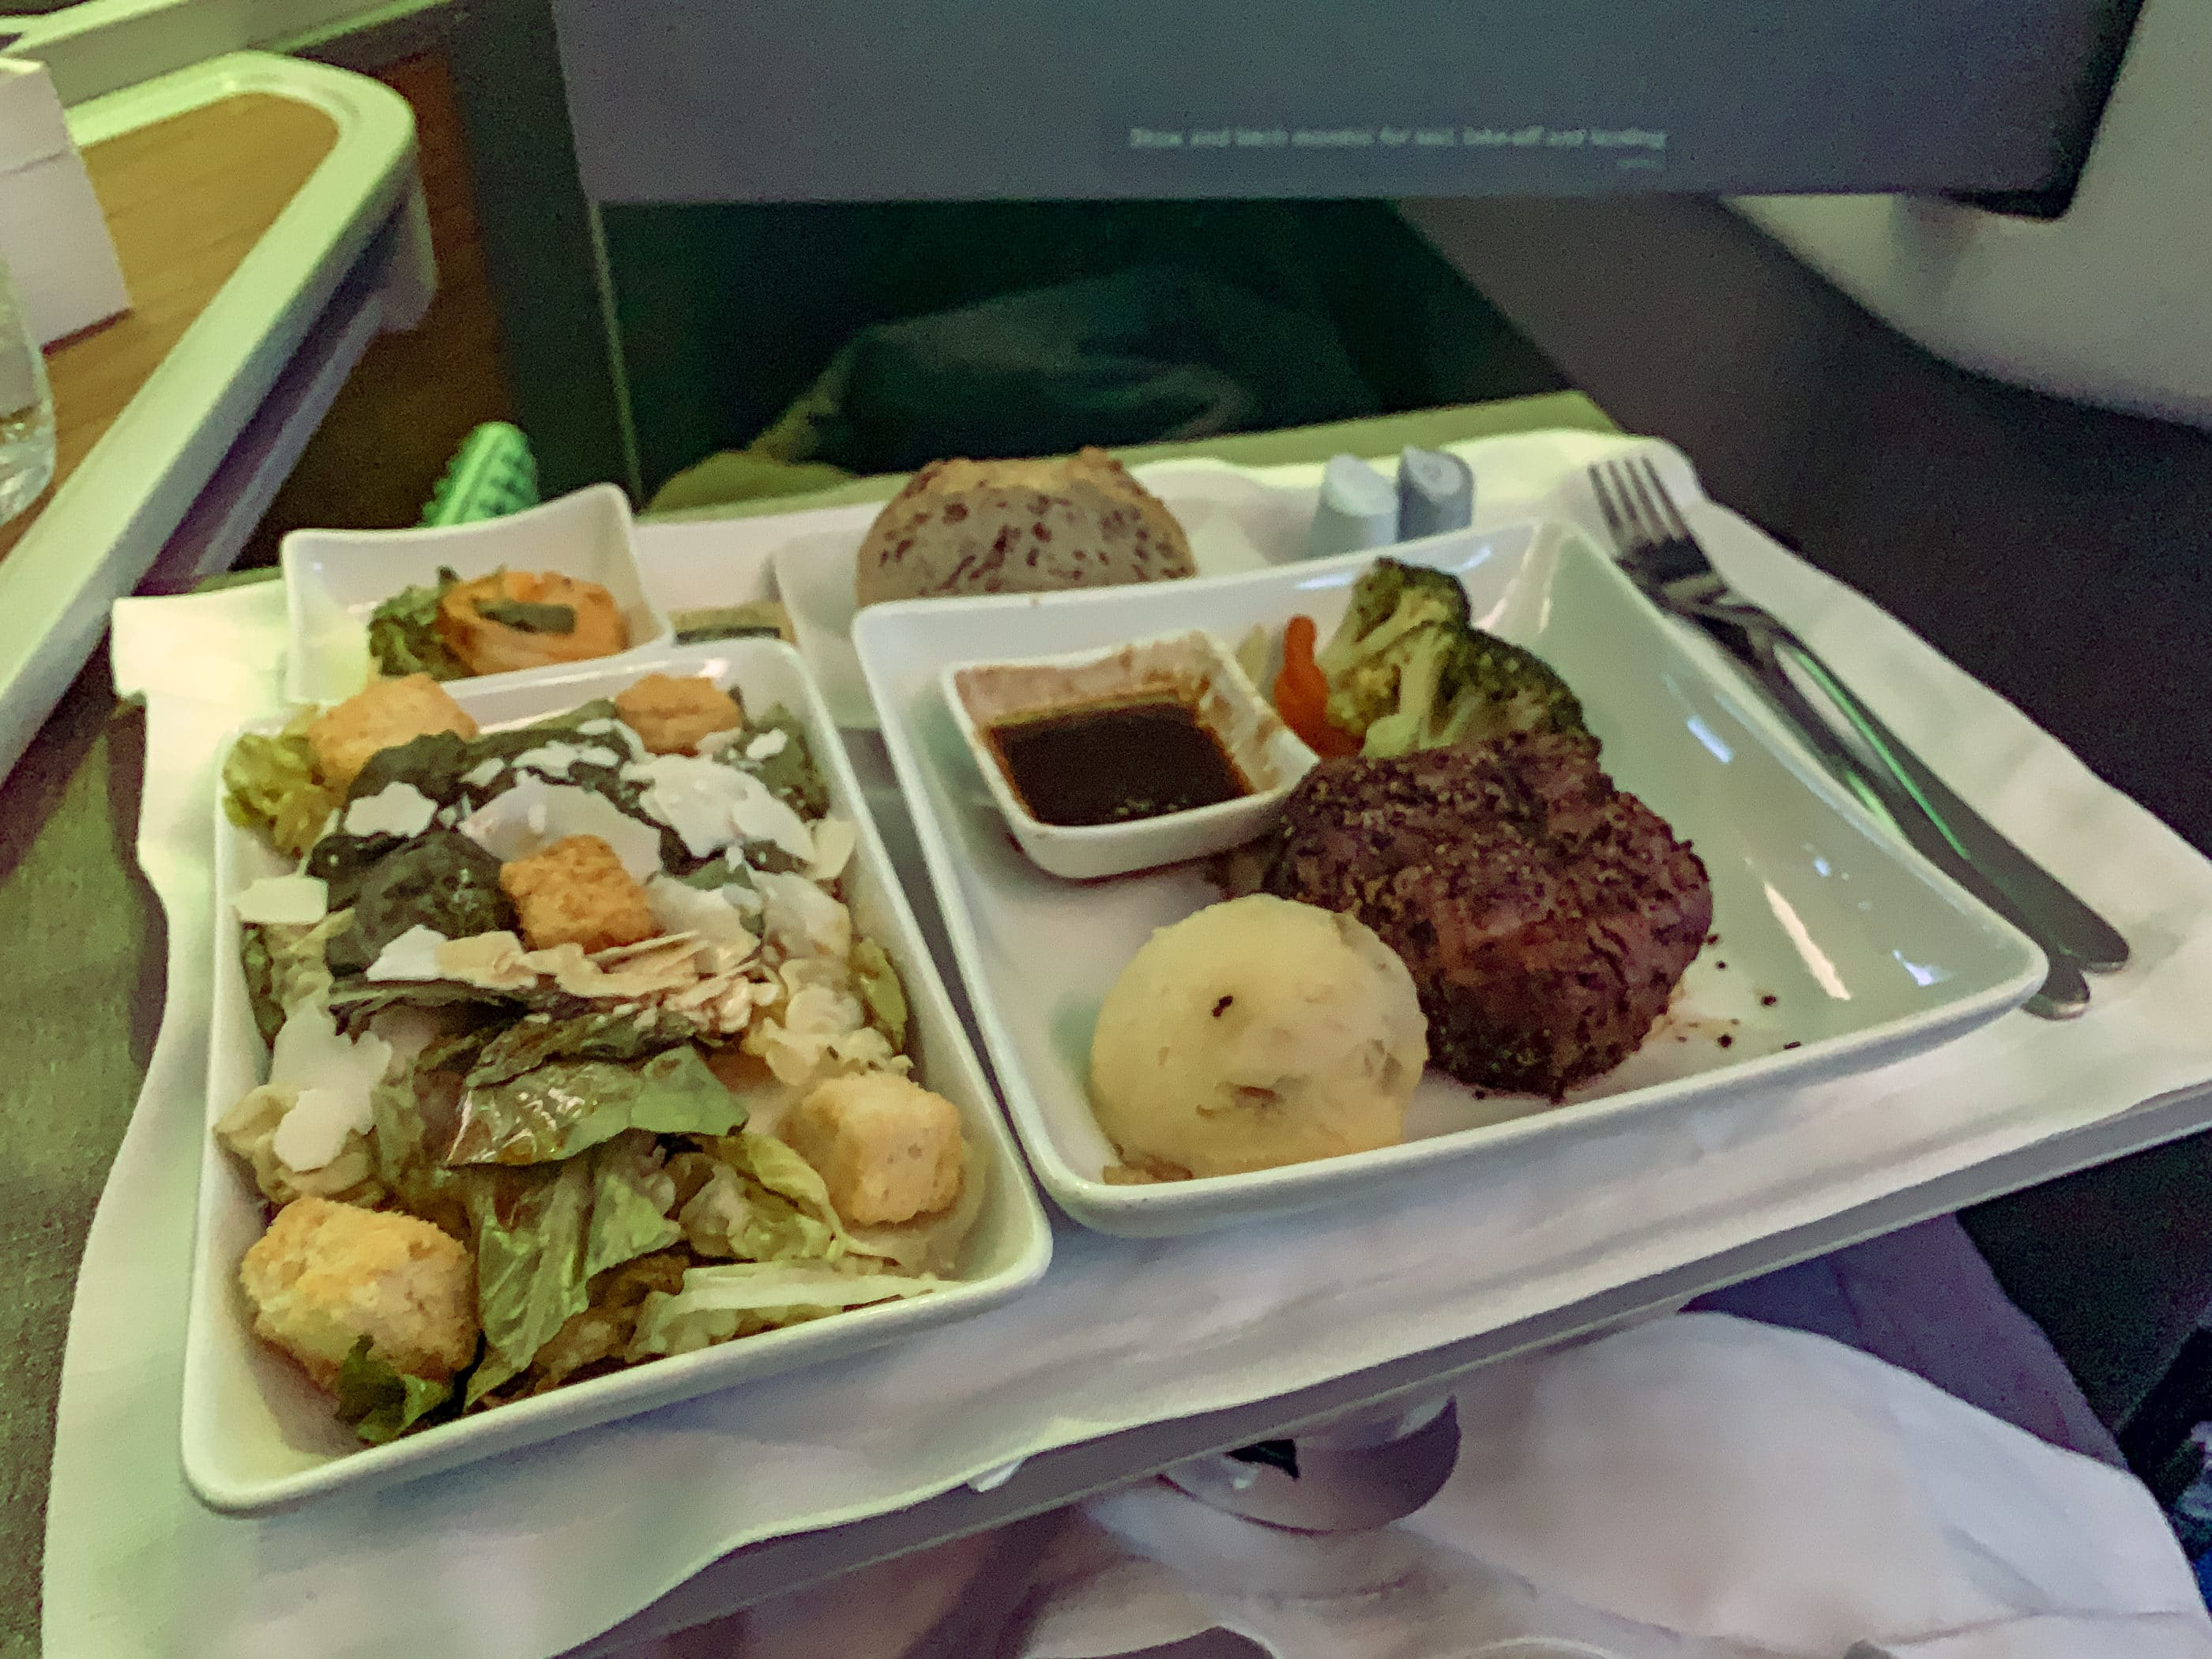 Dinner on American Airlines in business class from LAX-HKG